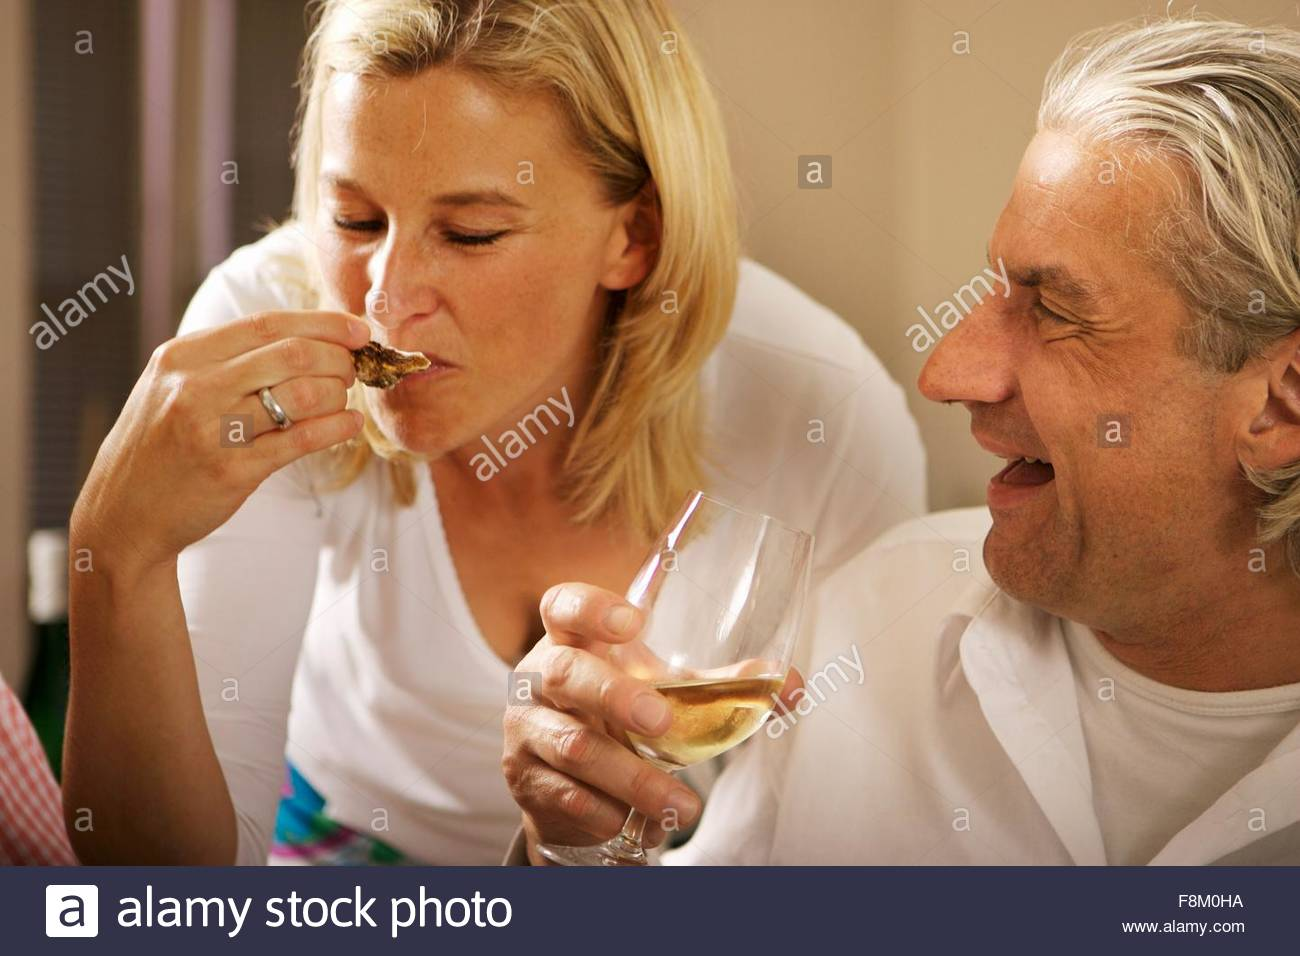 Blond woman and grey-haired man at a party - Stock Image